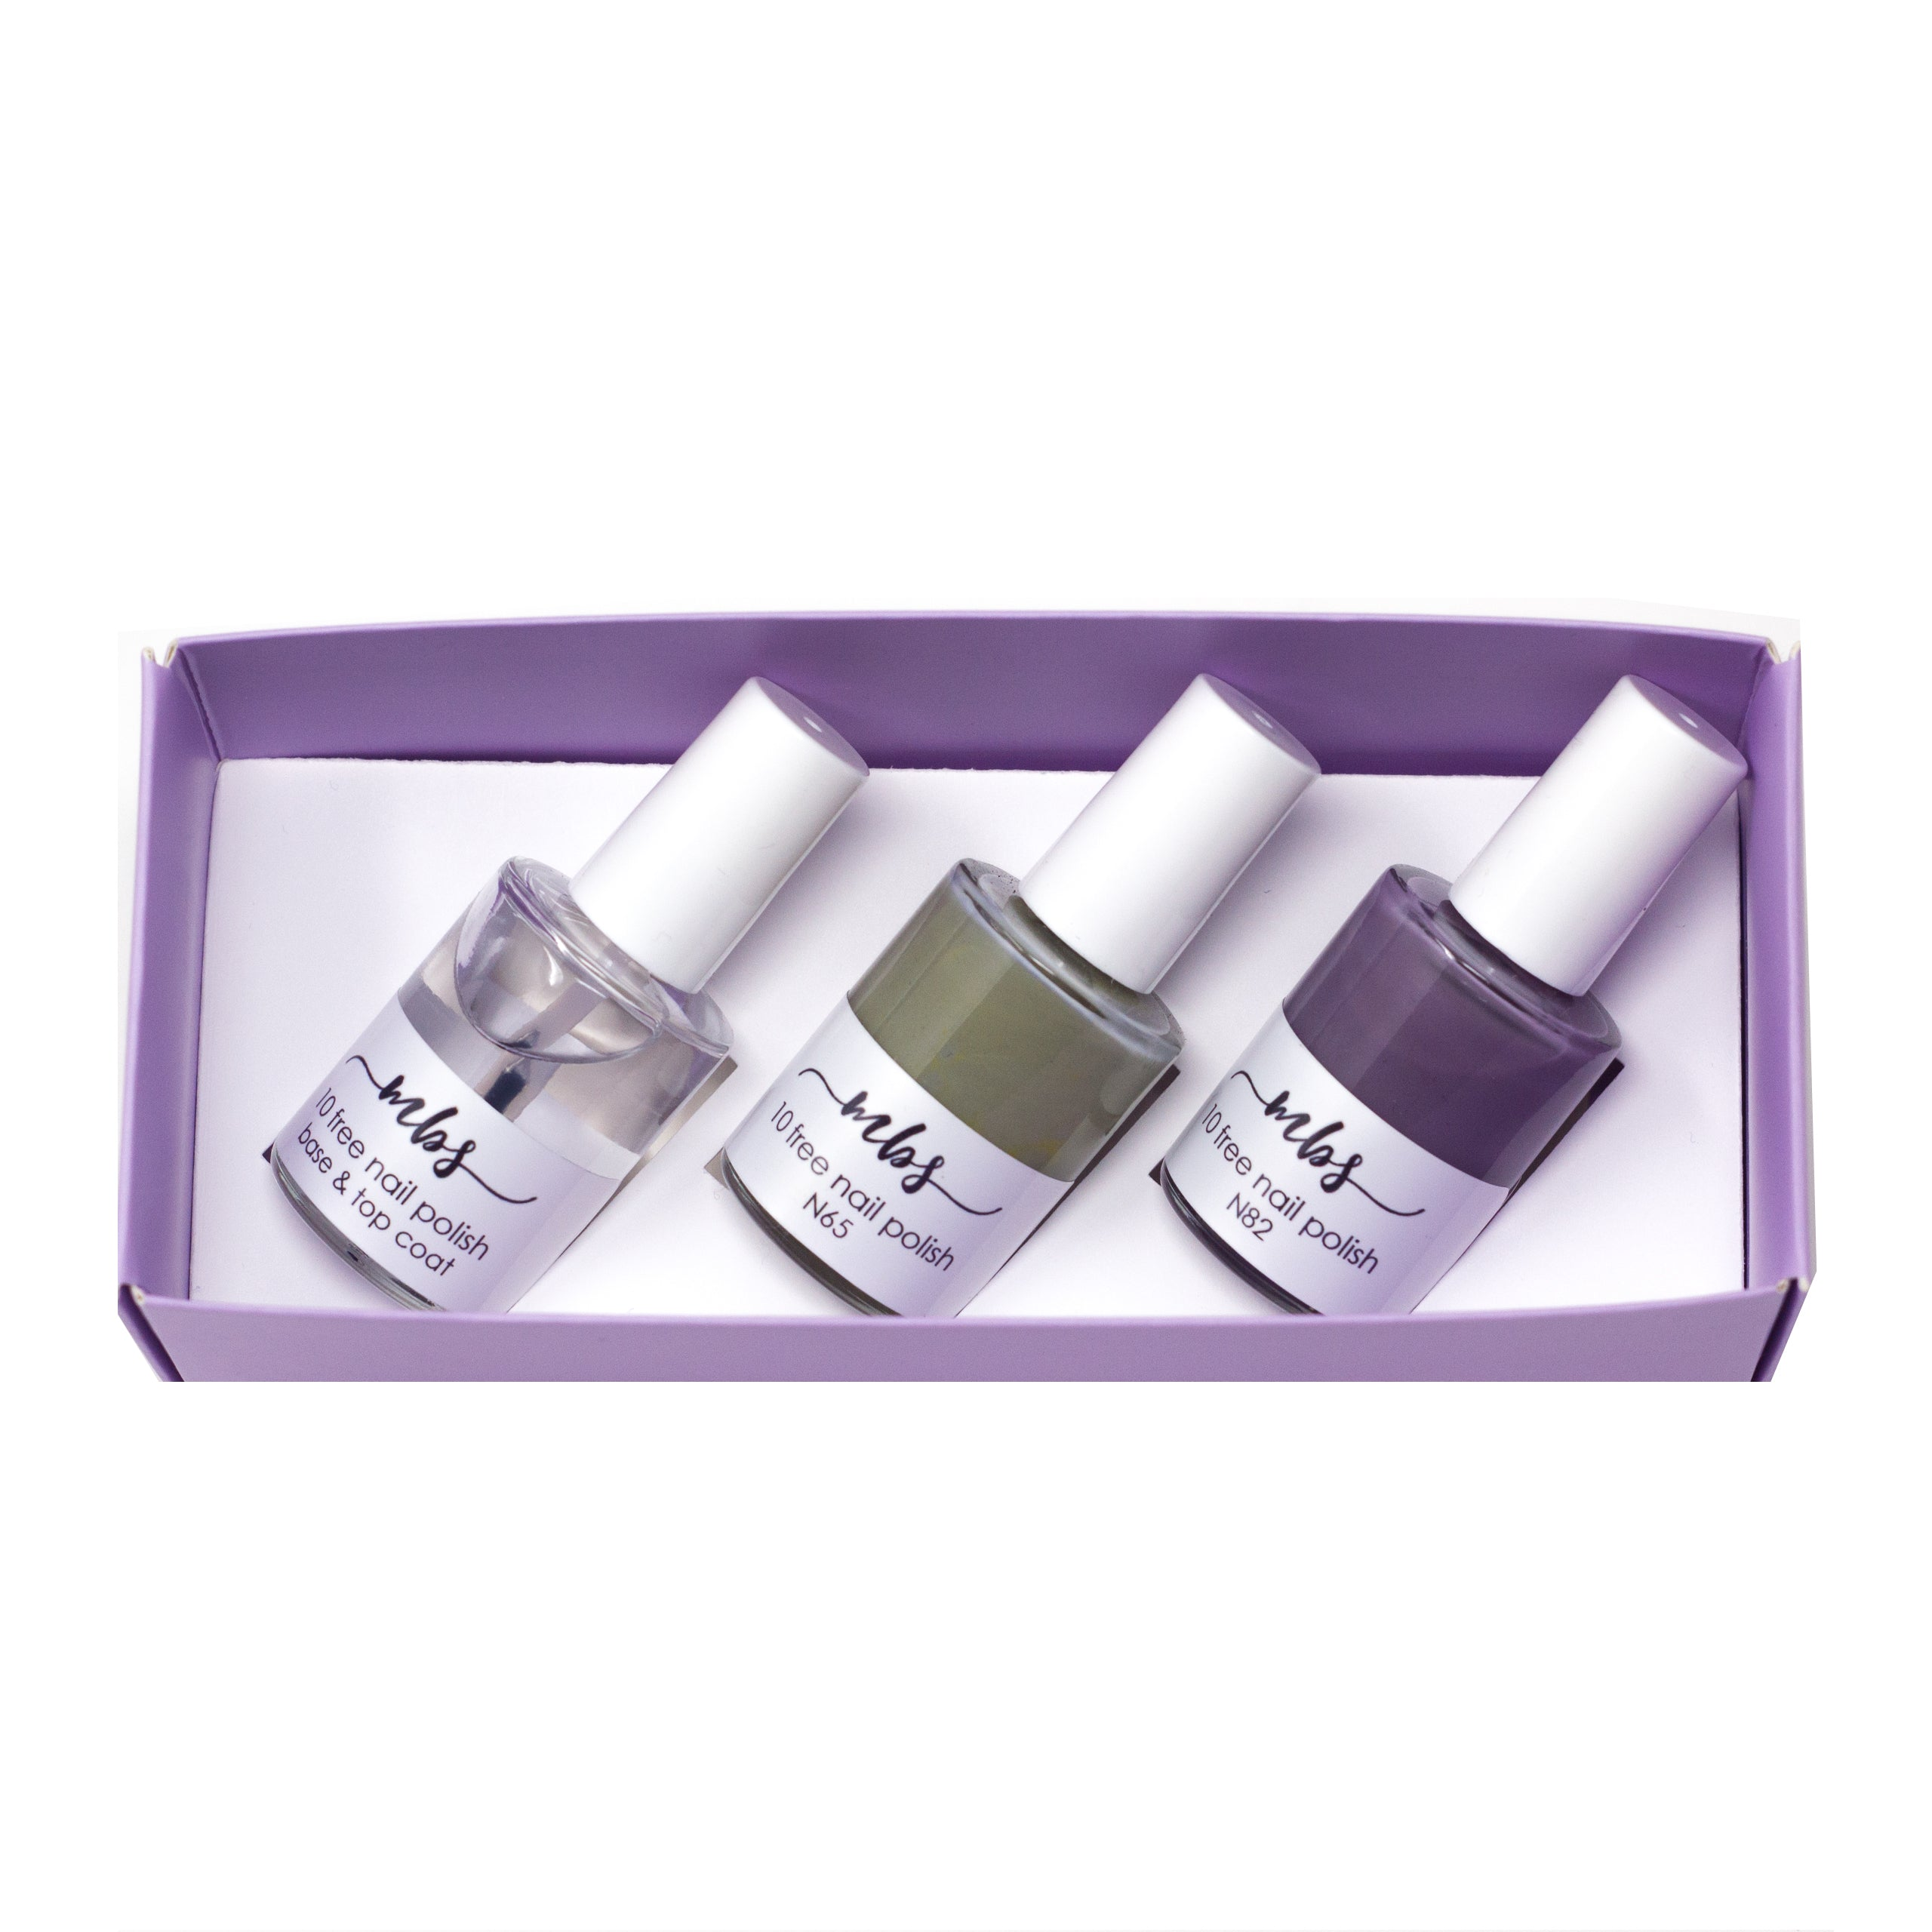 Nail Polish Trio (N65 + N82 + Clear Coat)-Gifts-Morning Blossom Studio